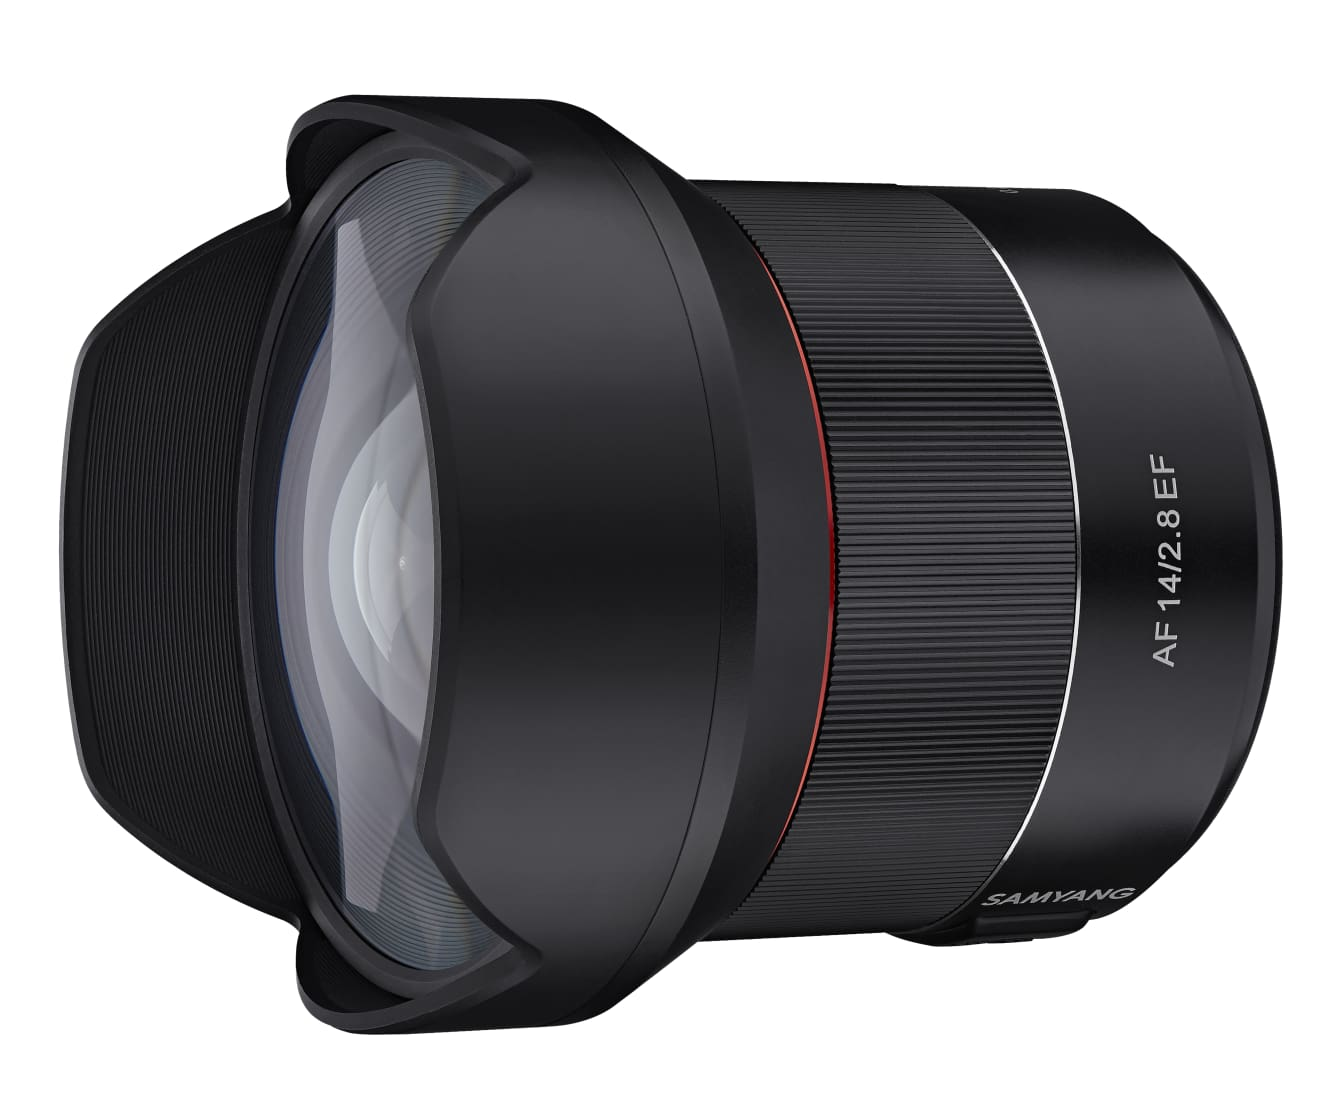 Samyang AF 14/2.8 EF - Samyang introduces the first AF lens for Canon EF Mount